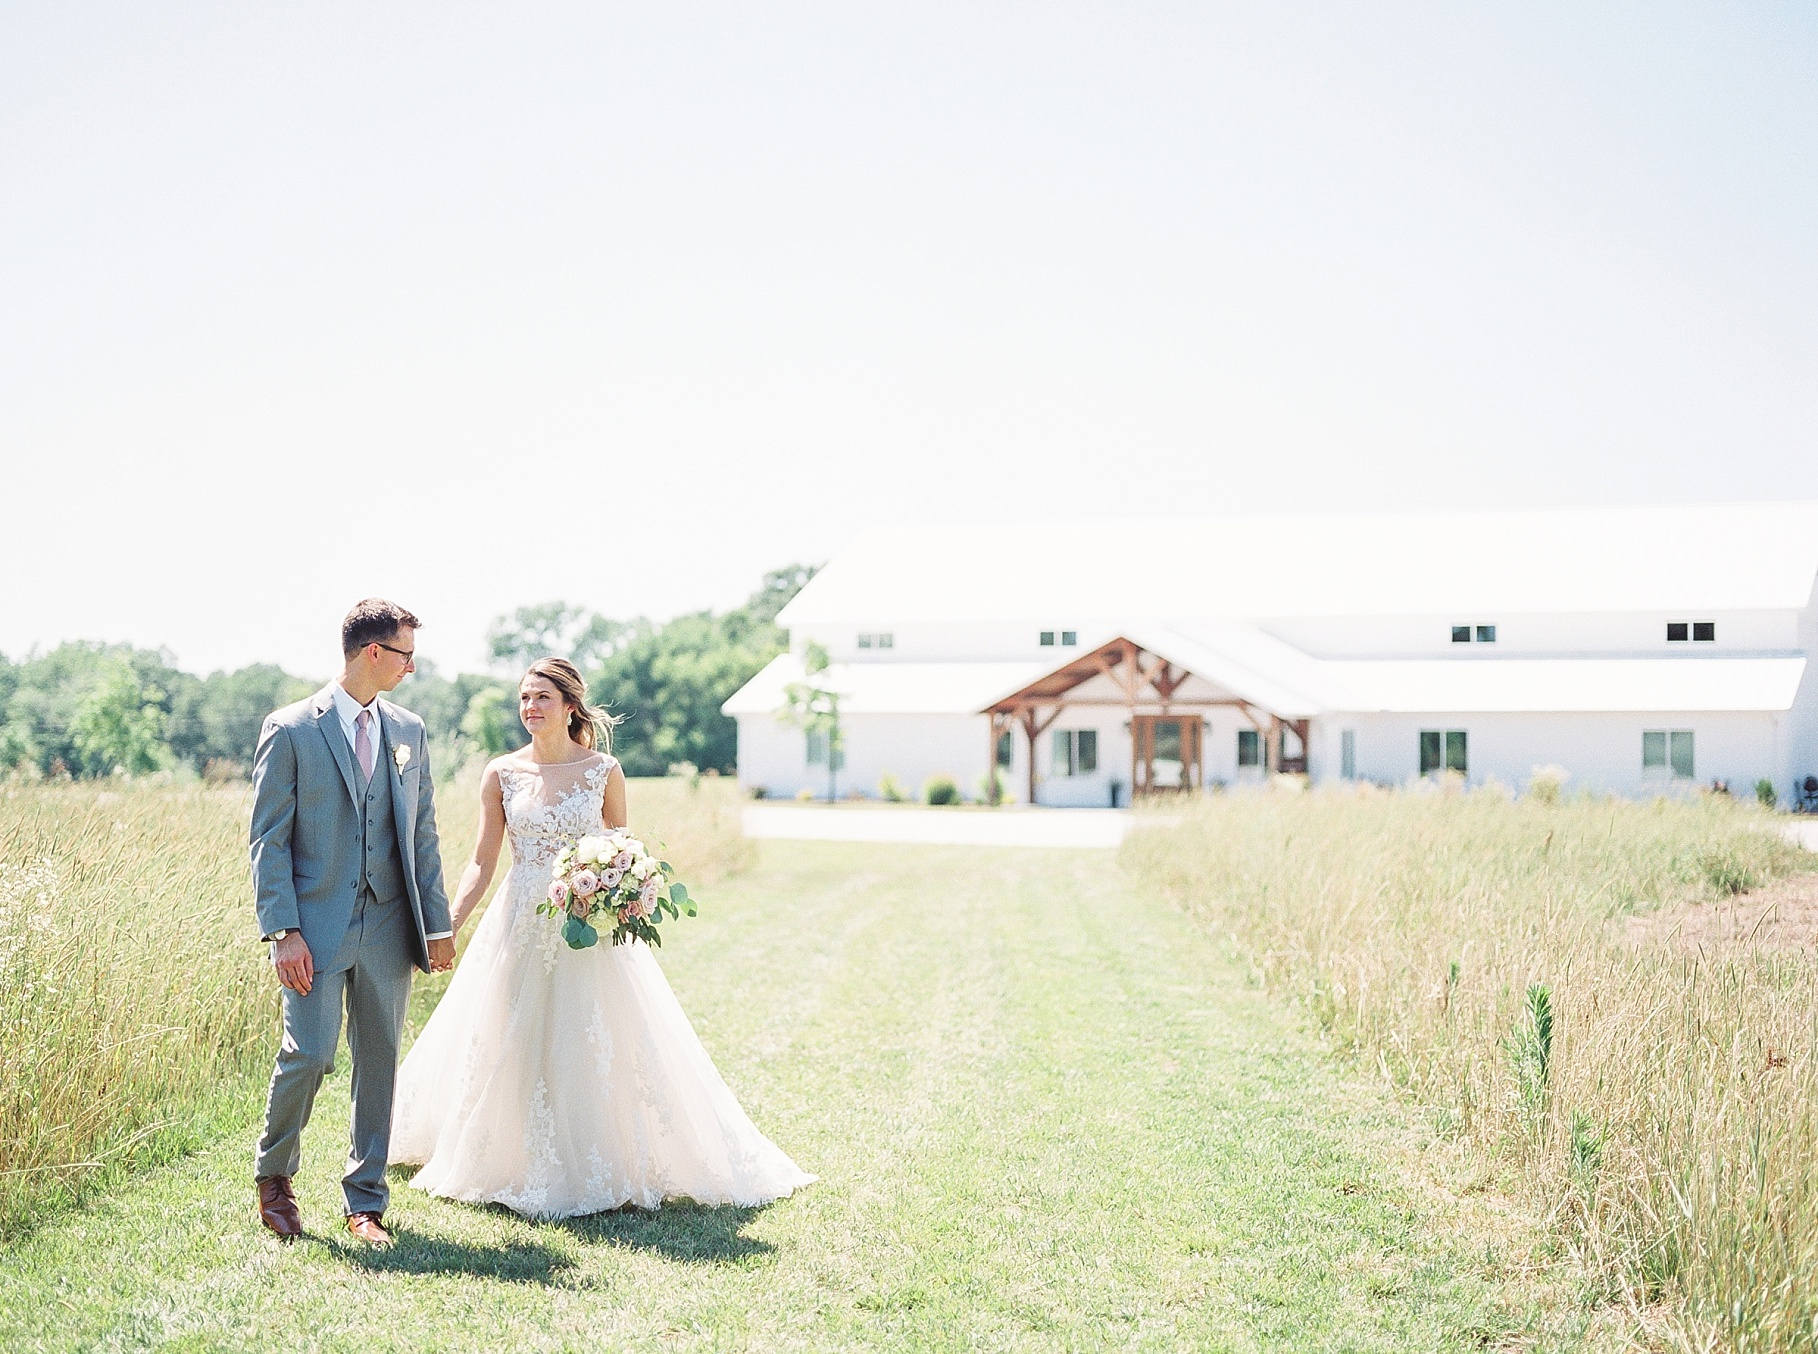 Classic Quartz, White, and Deep Green Wedding at Emerson Fields by Kelsi Kliethermes Photography Best Columbia Missouri and Maui Hawaii Wedding Photographer_0030.jpg